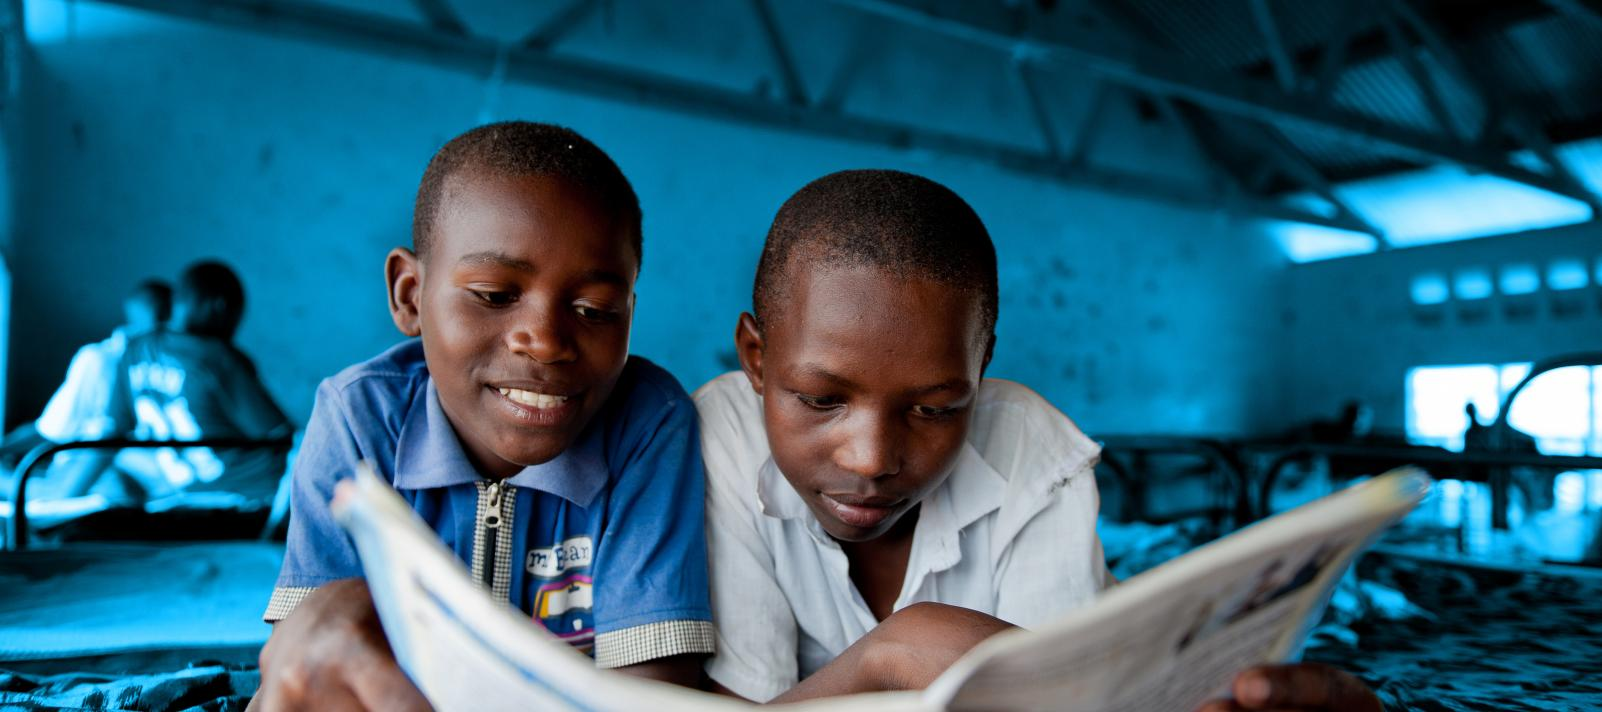 Two boys reading a book in their school dormitory.